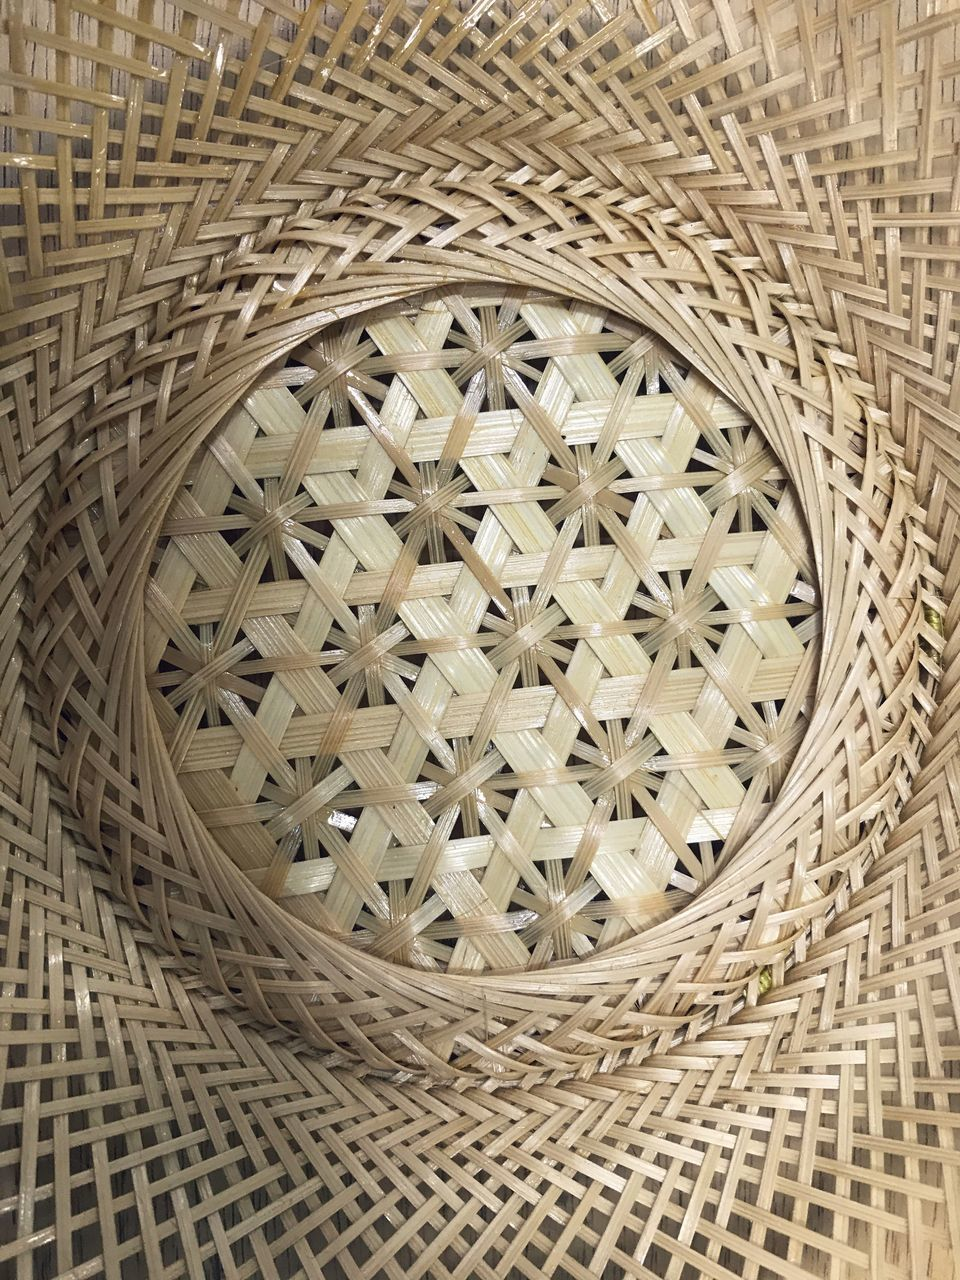 CLOSE-UP OF WICKER BASKET IN GLASS